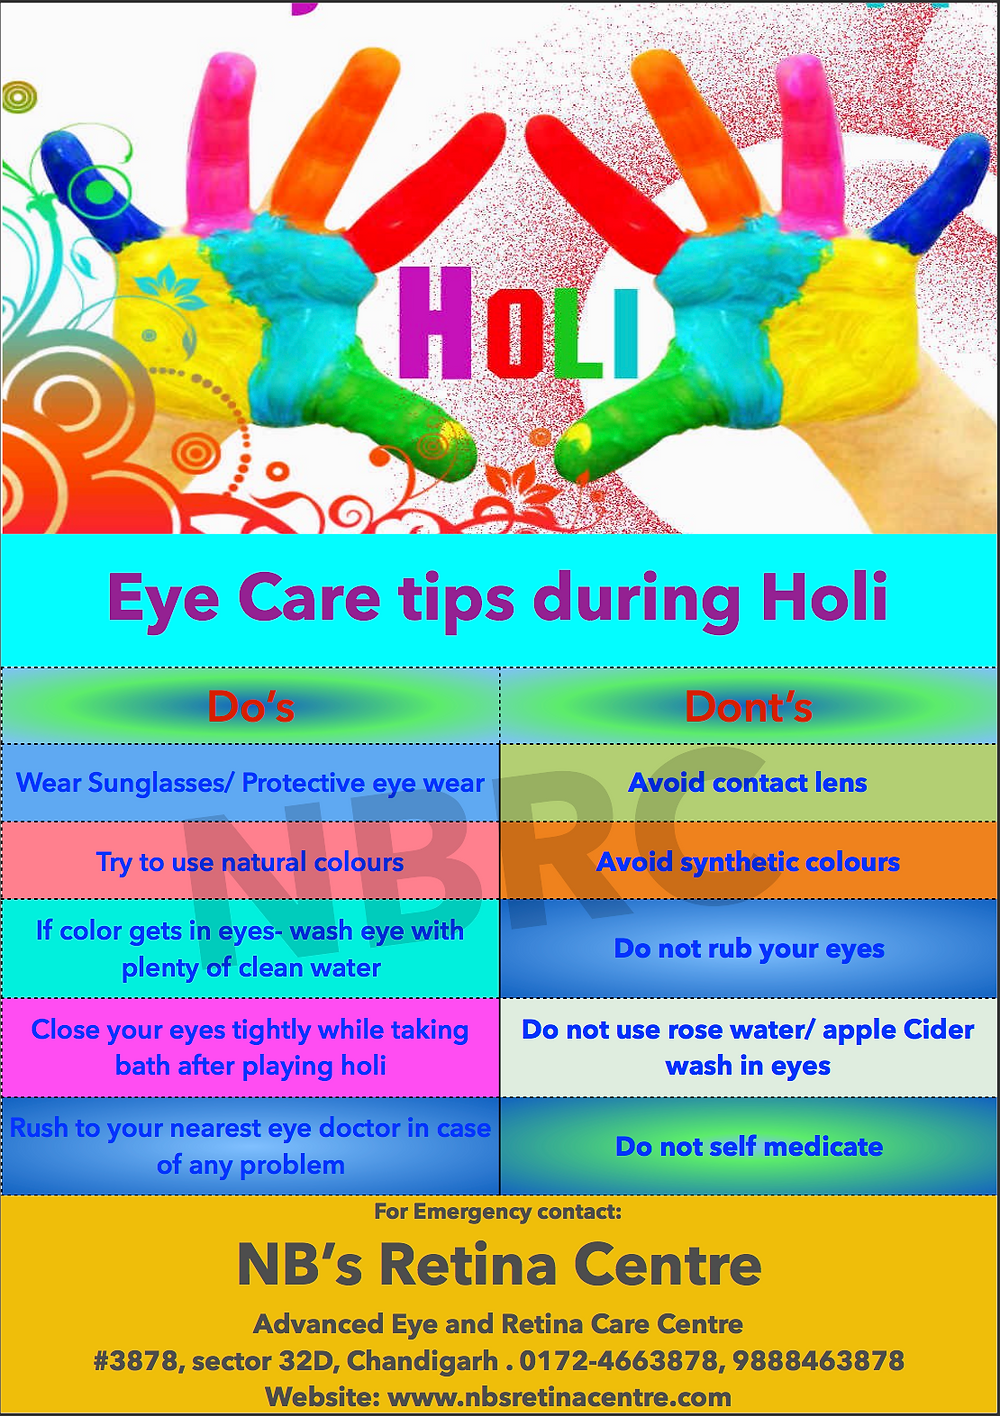 Our Eye need special care during holi, as these are the most common organs of injury while enjoying the festival of colours. These tips can help in long way to protect our eyes from serious damage.